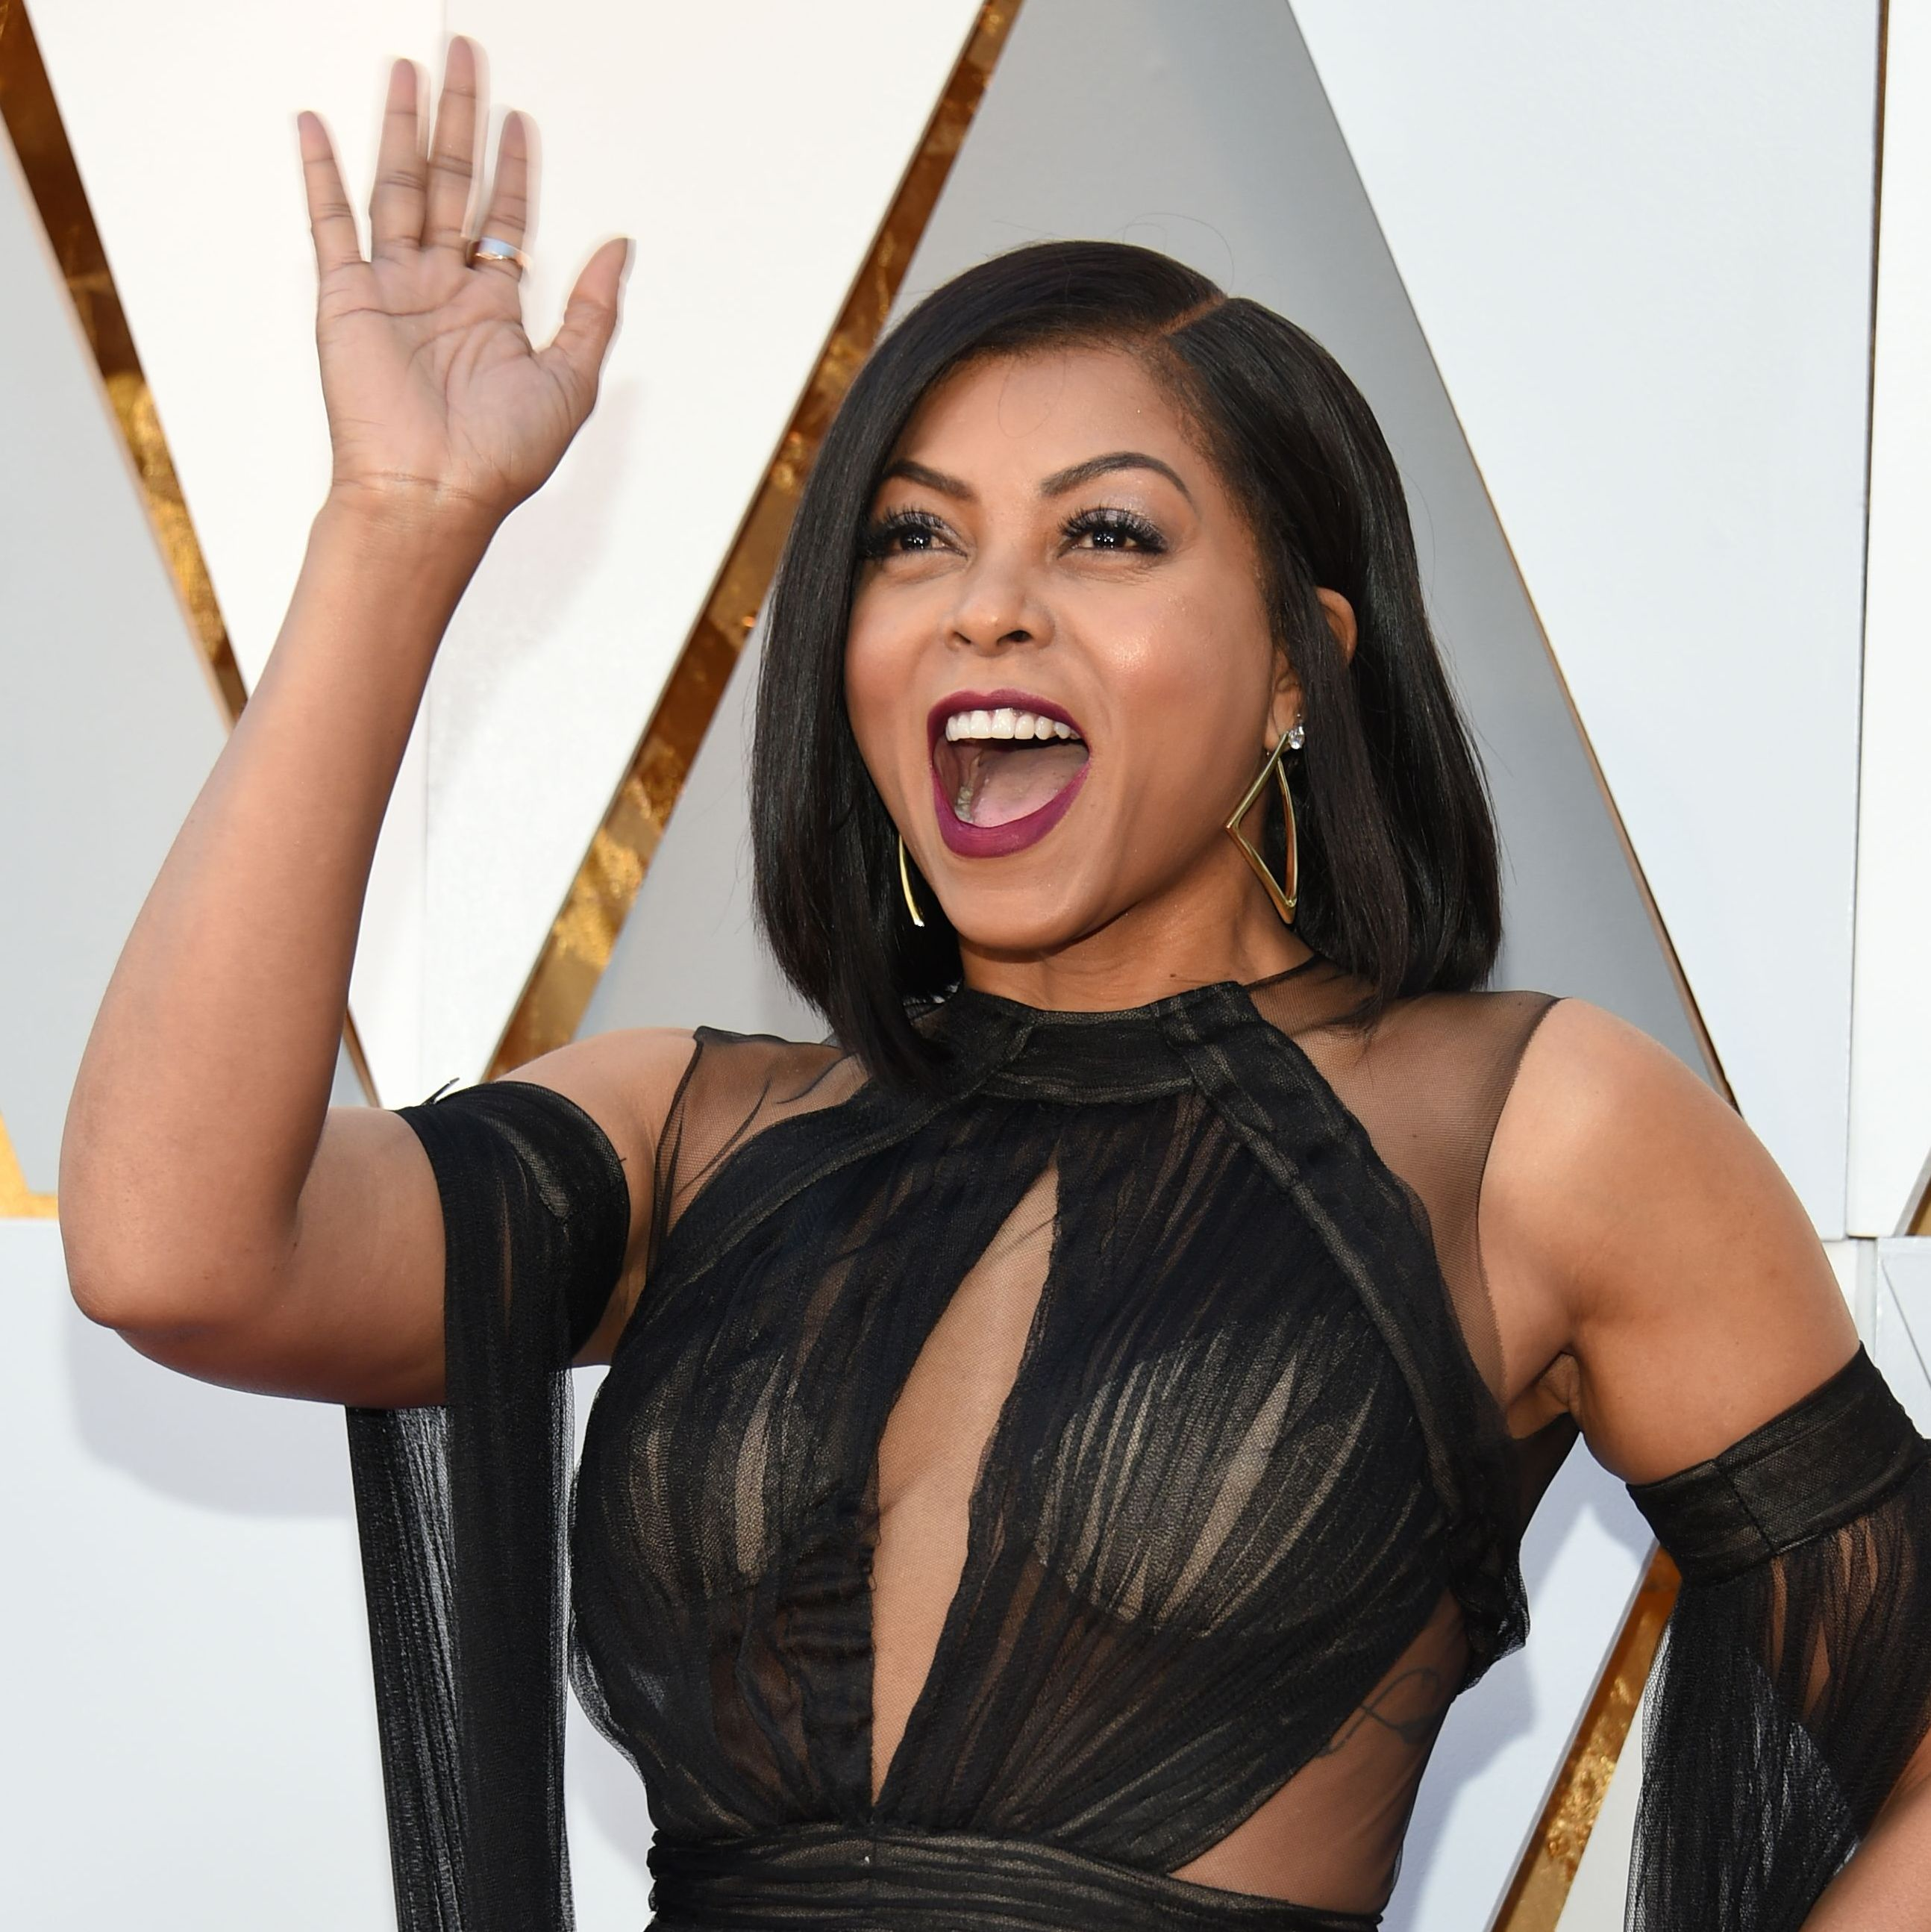 """""""I had to go through several therapists."""" """"I talk to someone regularly. It has to be regularly, and that's what I learned. It gets frustrating because you're waiting for them to fix you, but it's not that easy,"""" Taraji P. Henson said of how she manages her depression in an April 2019 interview with Variety . """"I had to go through several therapists that I felt comfortable talking to, or that I felt was moving me forward and that I was making some progress with, and that takes time. I remember the first time I went, I was angry, because I was like, 'She didn't tell me nothing! She didn't tell me anything!' You're not going to figure it all out in one sitting."""""""